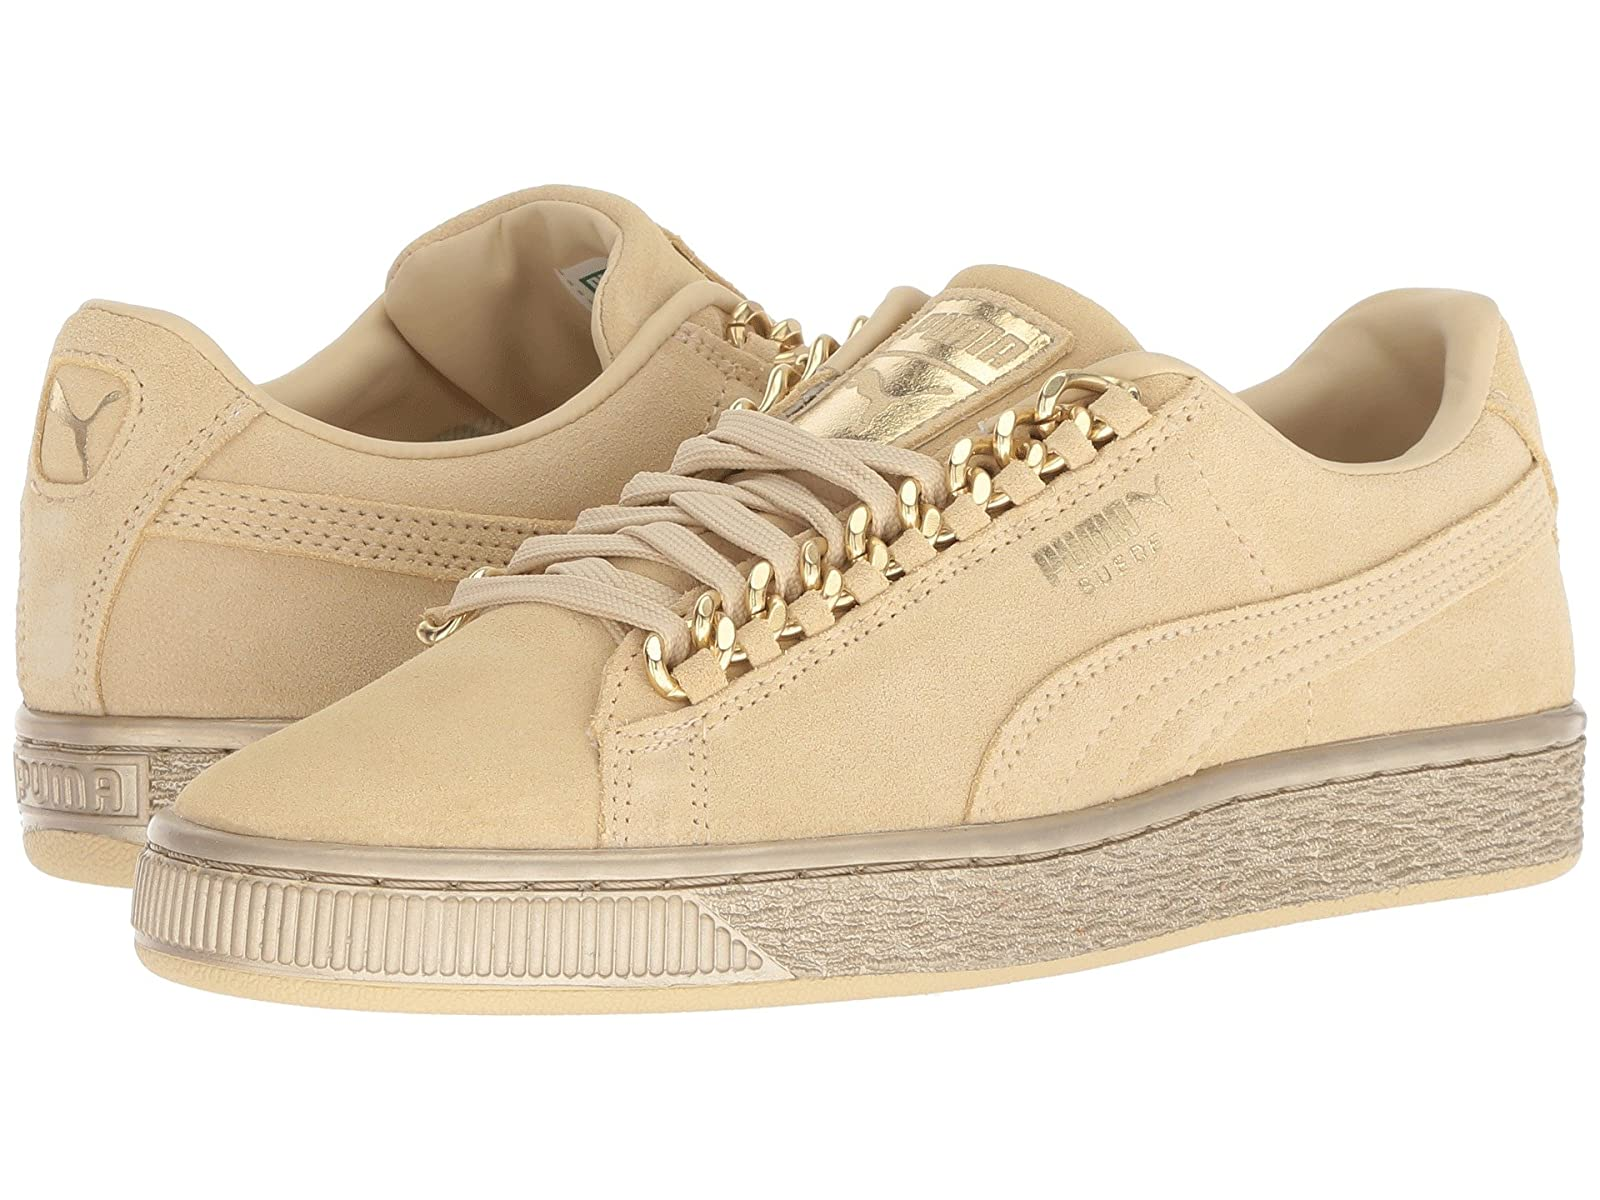 Puma Kids Suede Classic x Chain (Big Kid)Atmospheric grades have affordable shoes